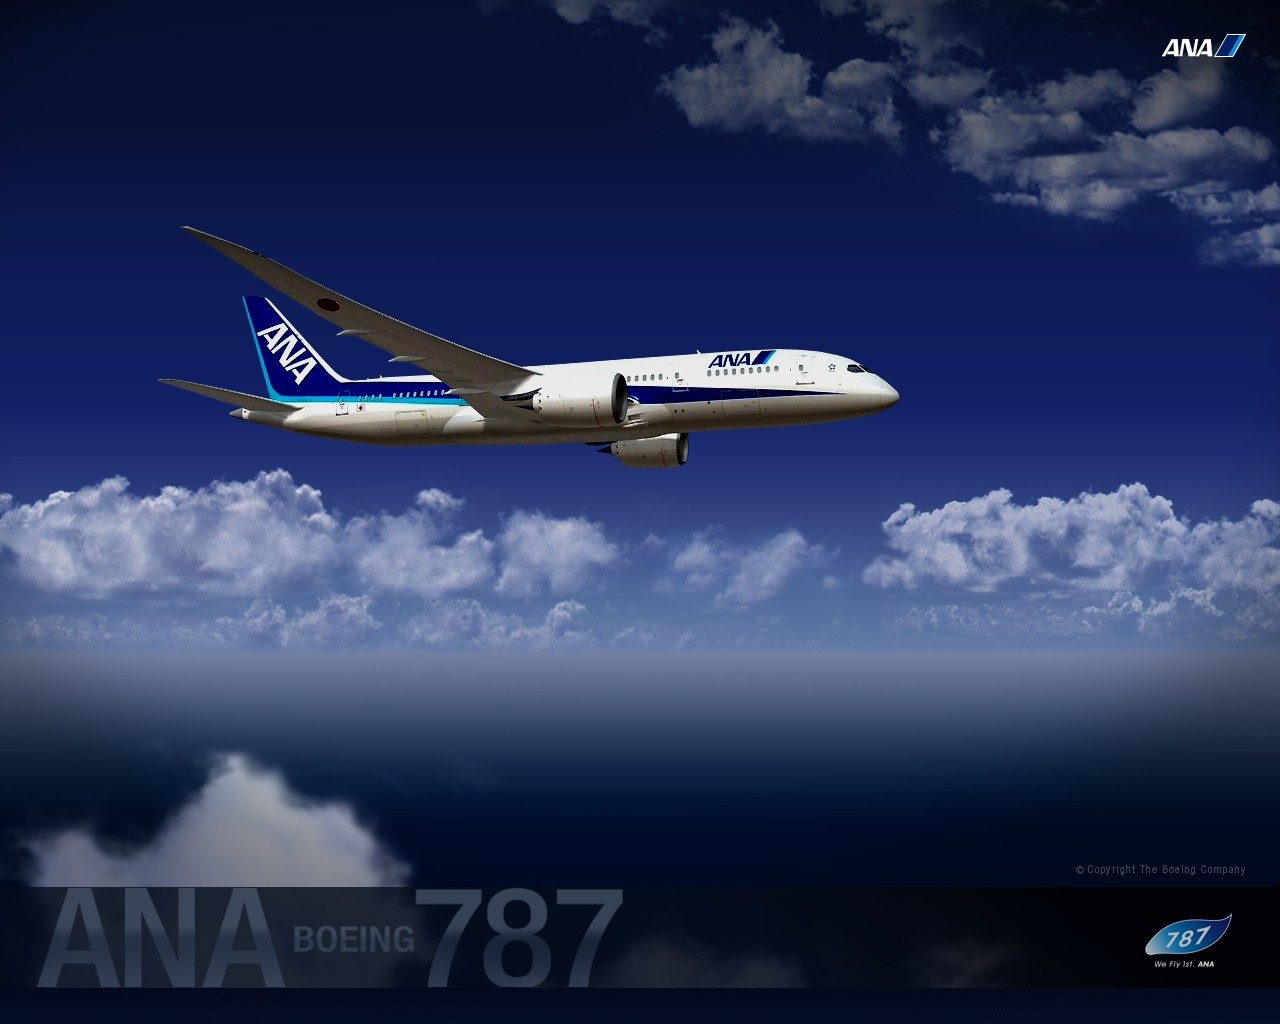 ANA All Nippon Airways Boeing Dreamliner wallpaper 30345